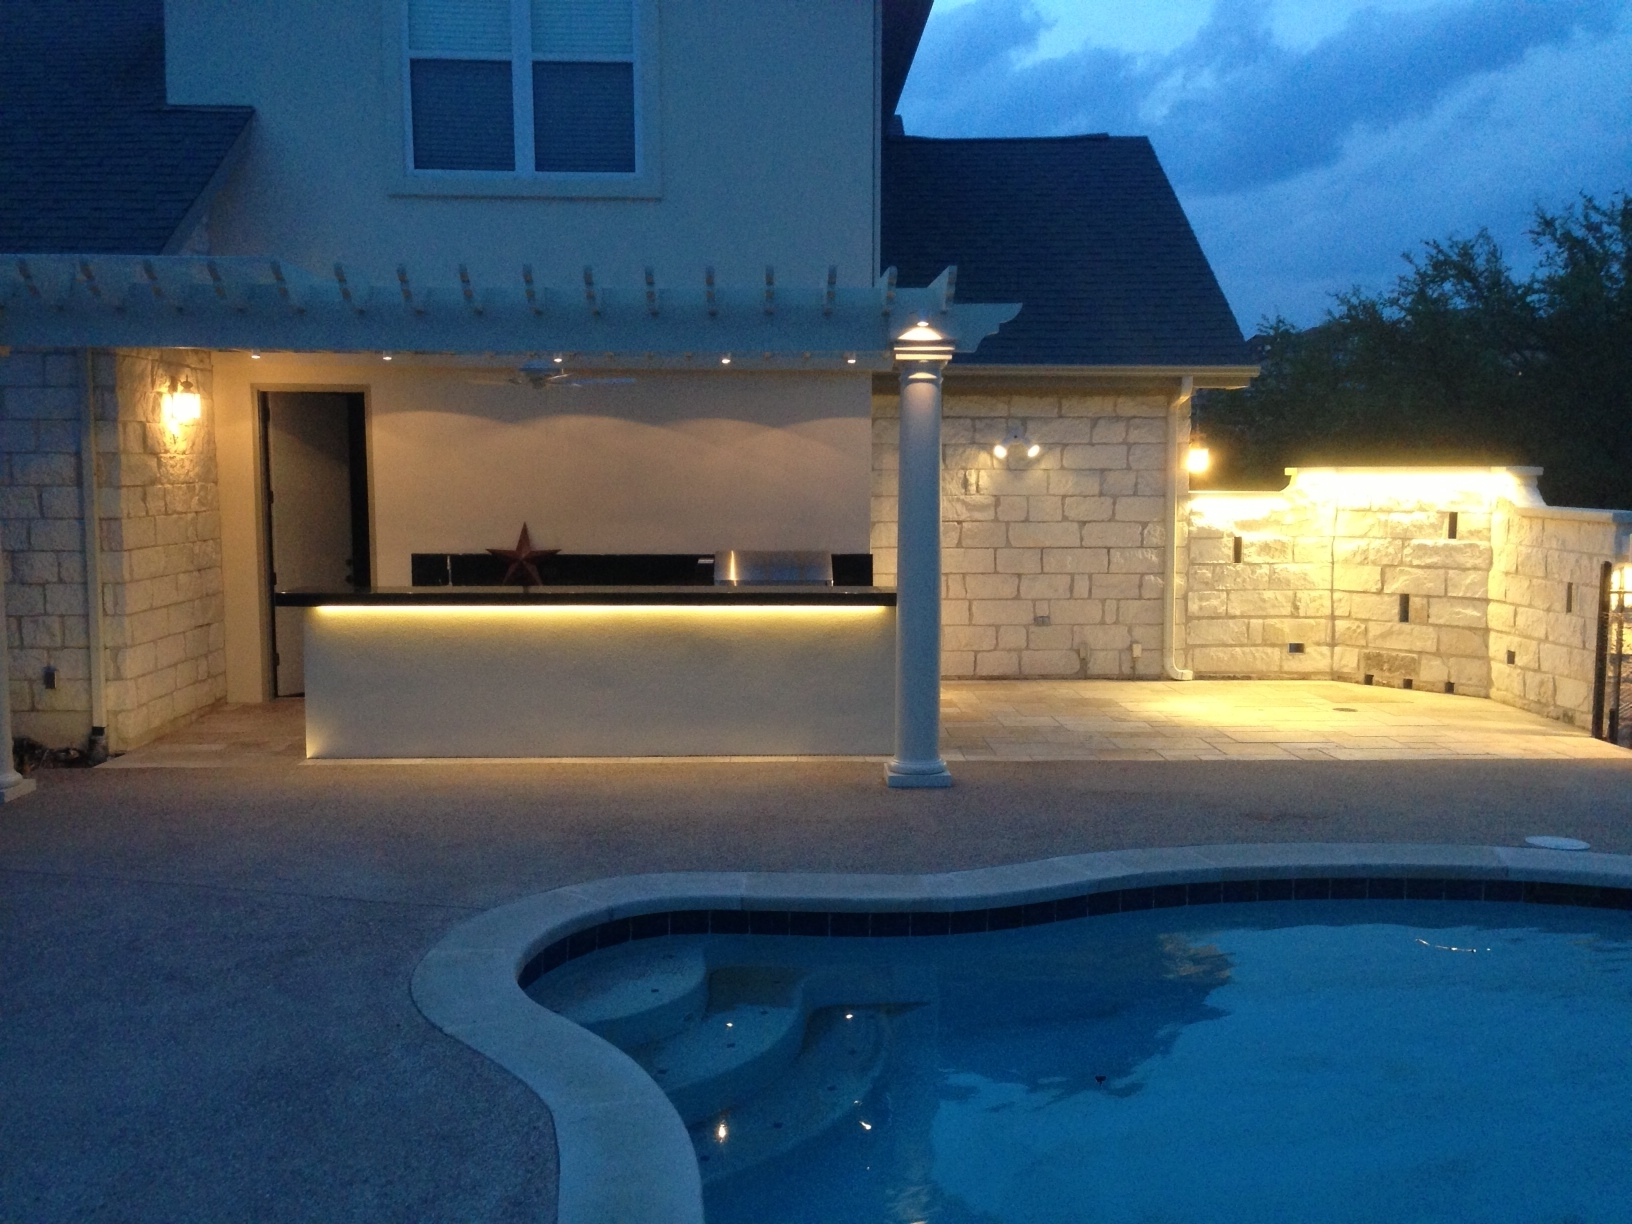 Residential Outdoor Wall Lighting With Widely Used Patio Wall Lights, Michigan Landscape Lighting Outdoor Lighting (View 17 of 20)